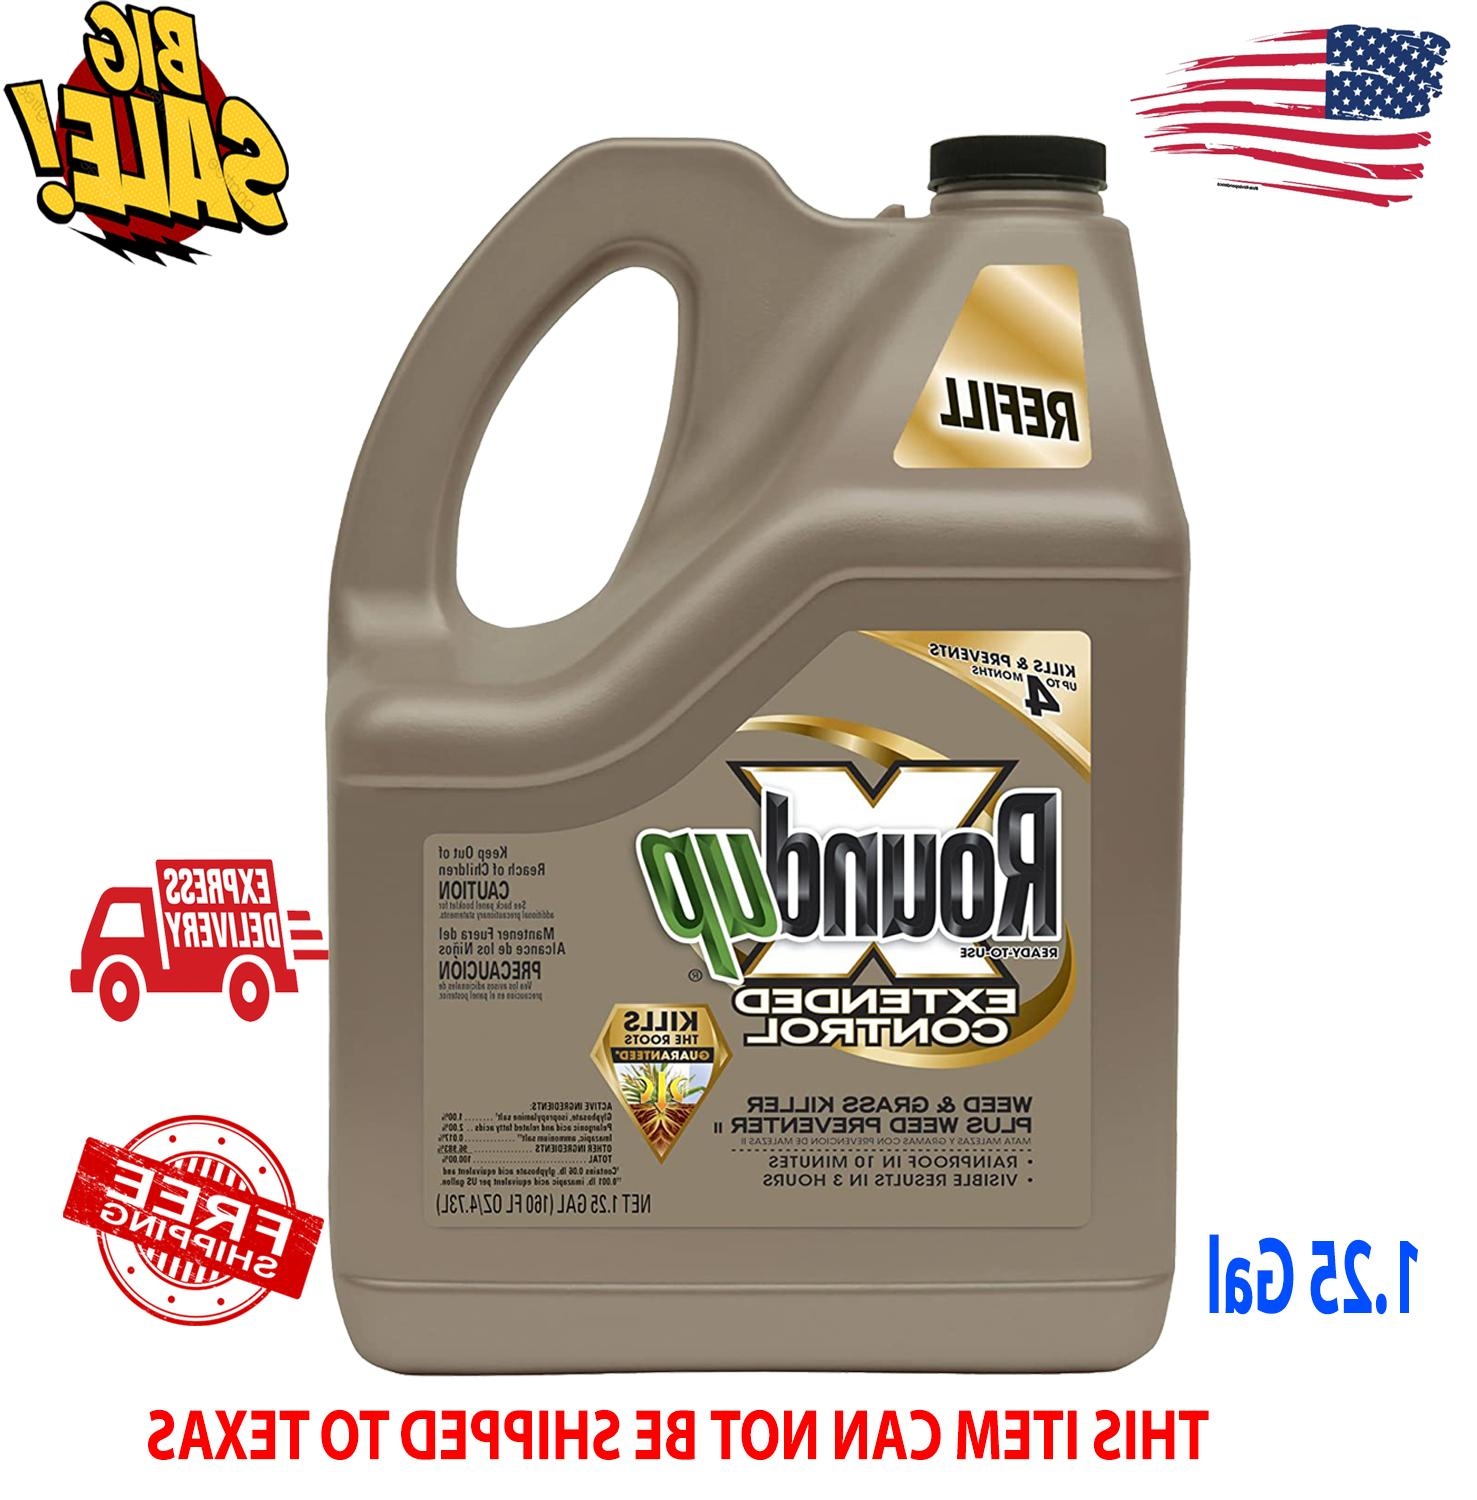 5708010 extended control weed and grass killer